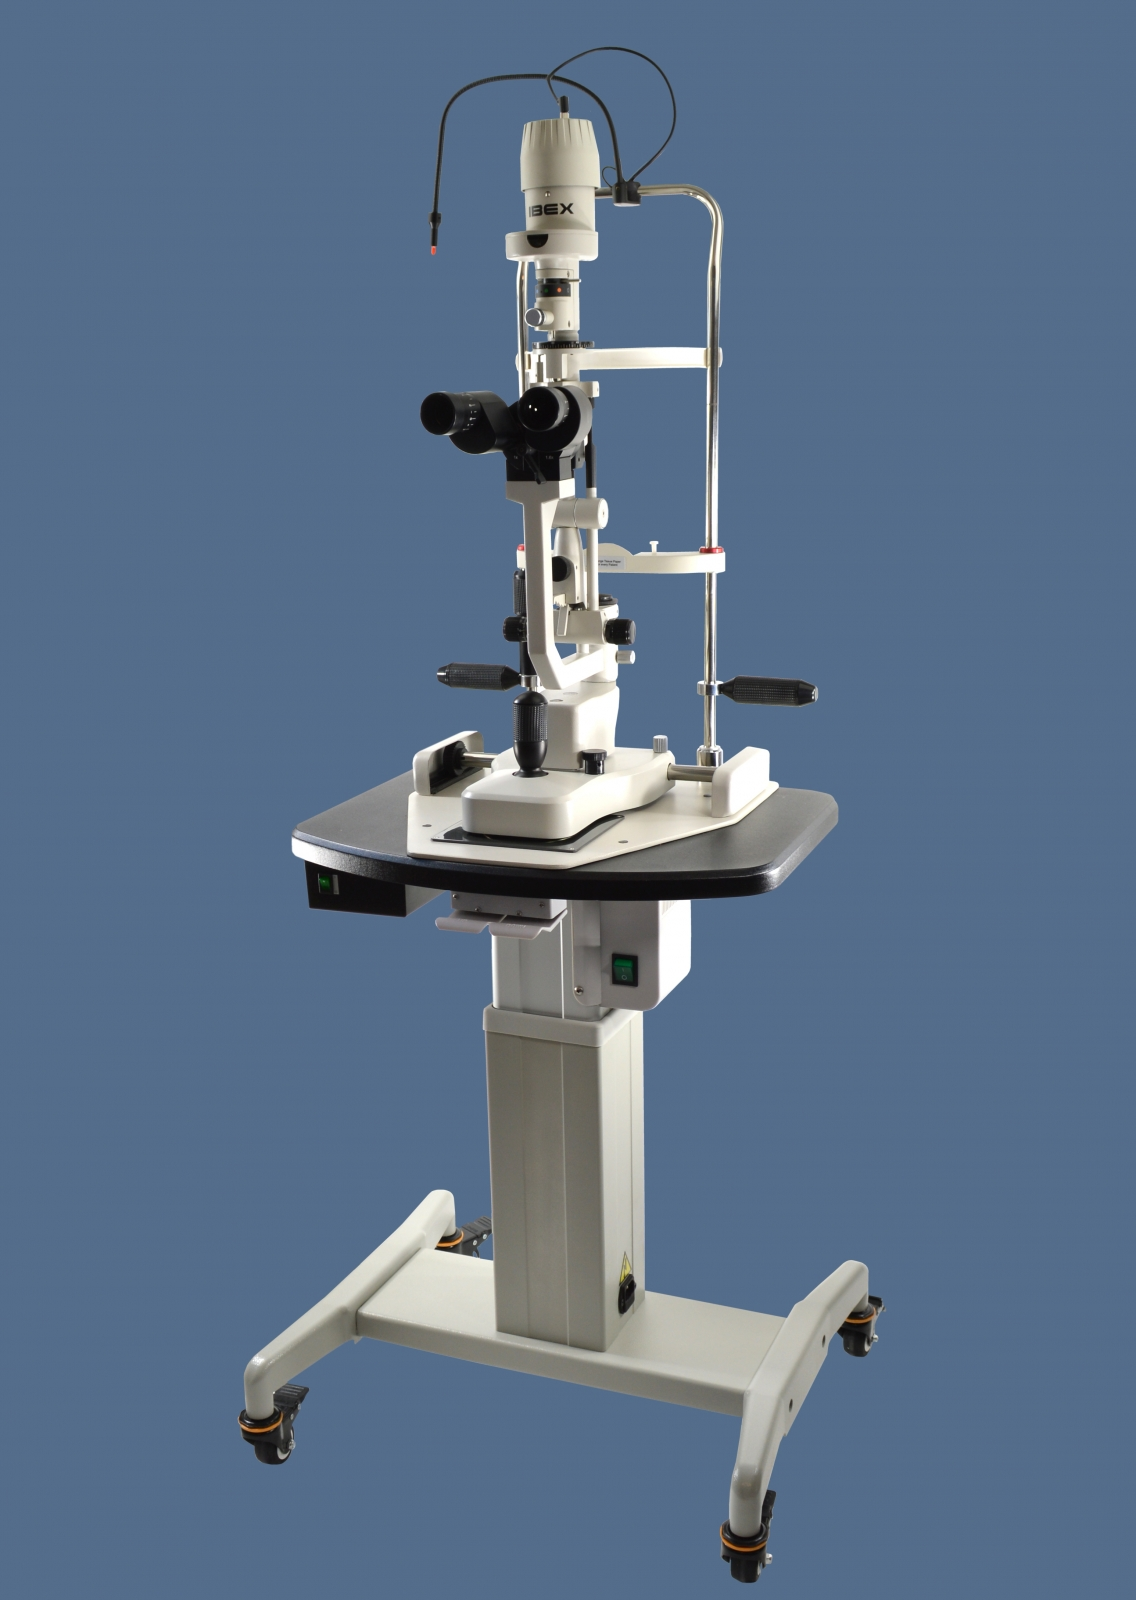 Ibexeye awesome slit lamp ibex portable 2 step led slit lamp ibex portable 2 step led slit lamp aloadofball Choice Image